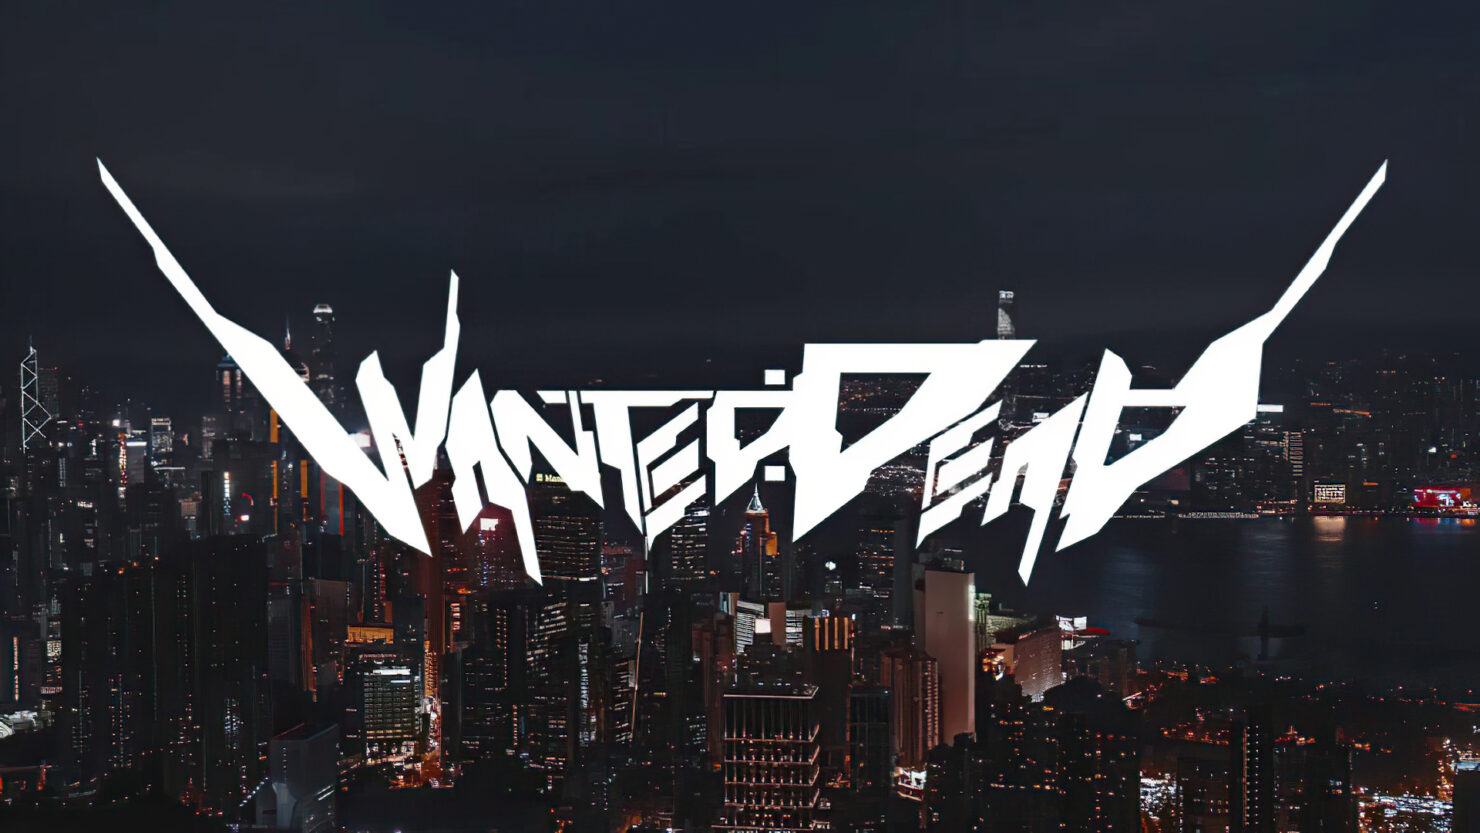 Wanted: Dead